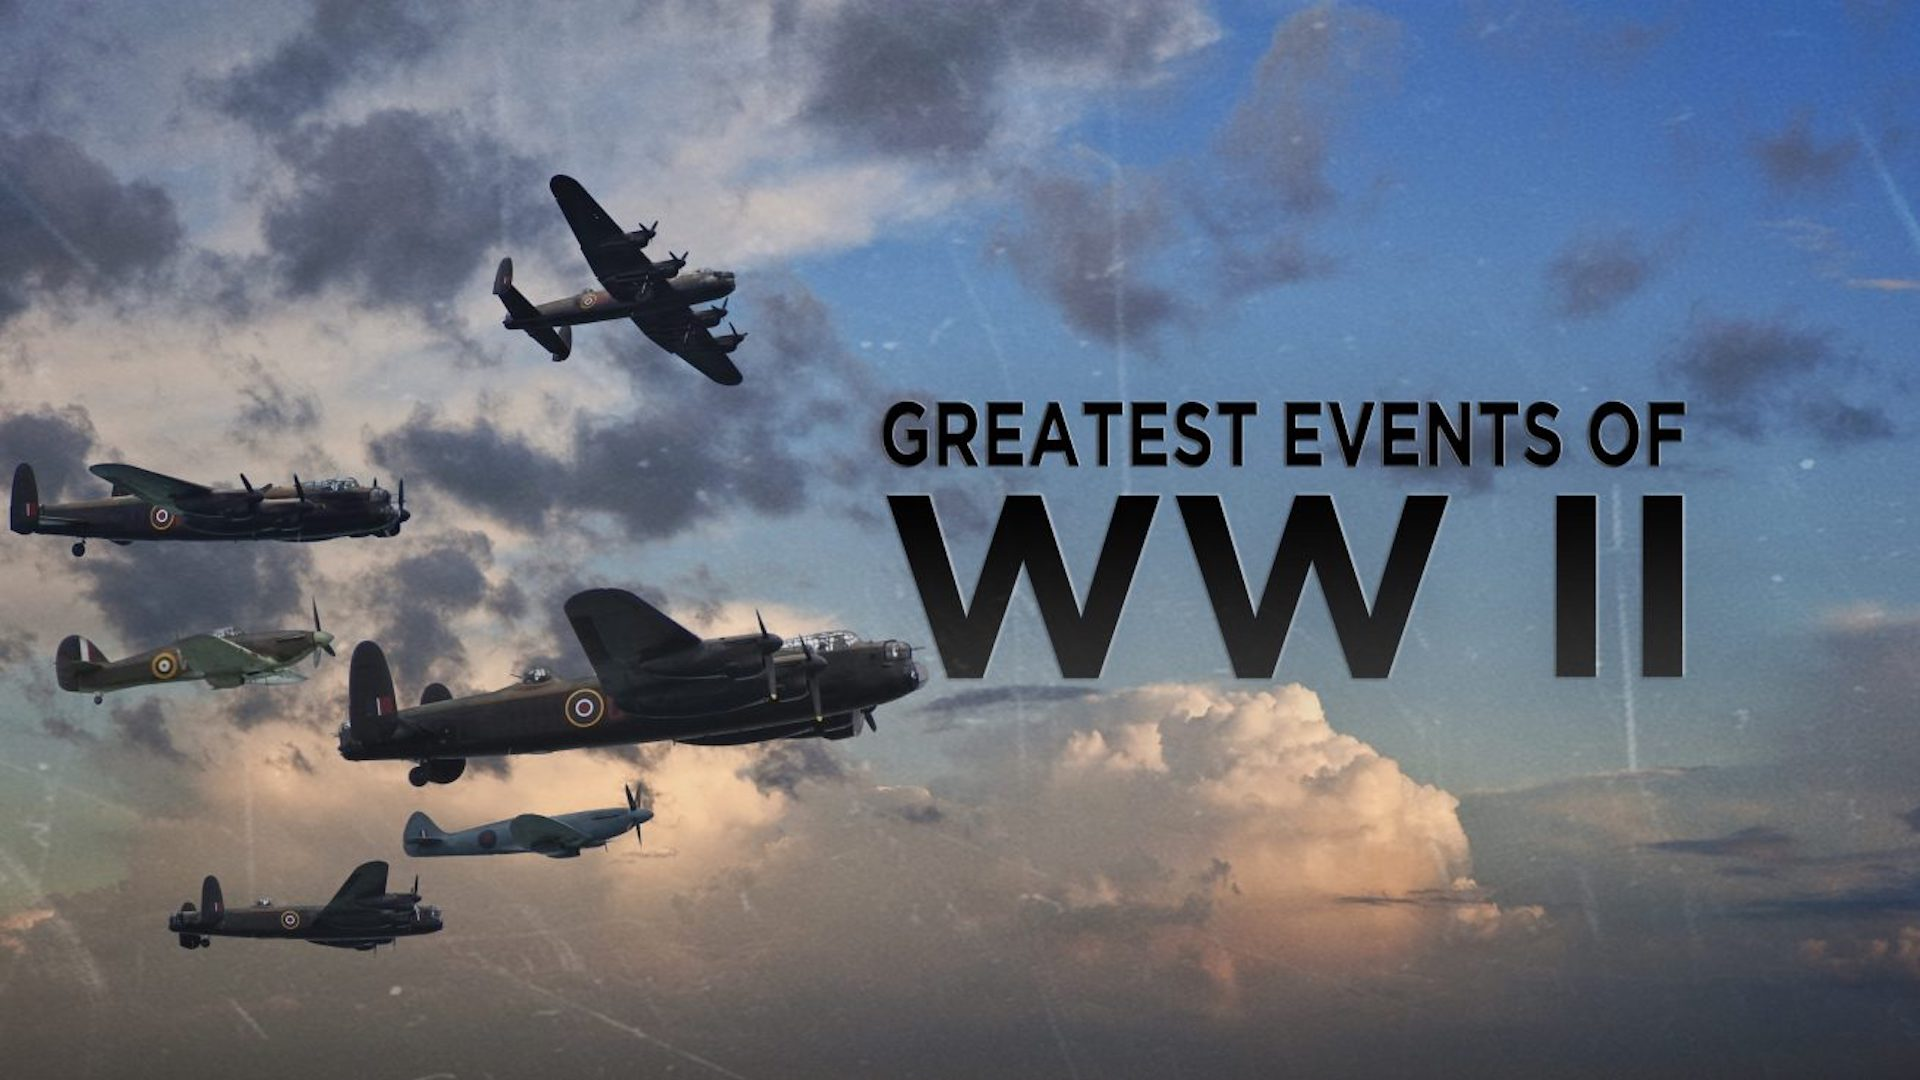 greatest events of world war ii in hd colour s01e02 720p web x264-stout